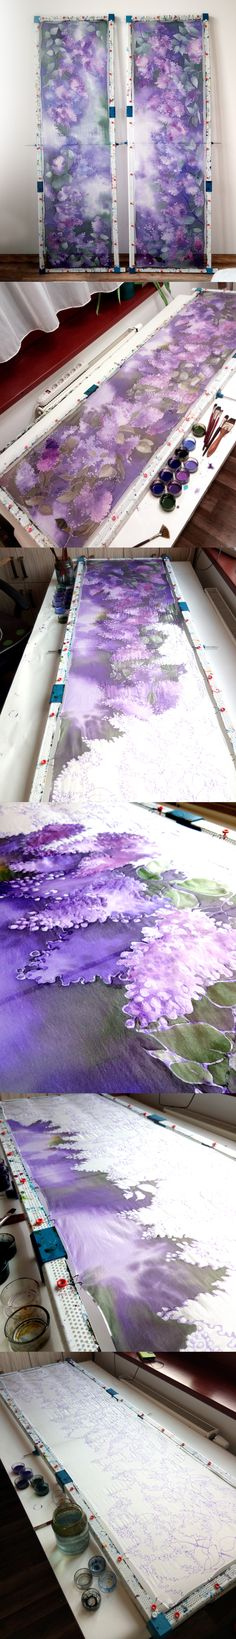 #lilac #silk #scarf hand painted by #Malinowska #minkulul with silk paints.